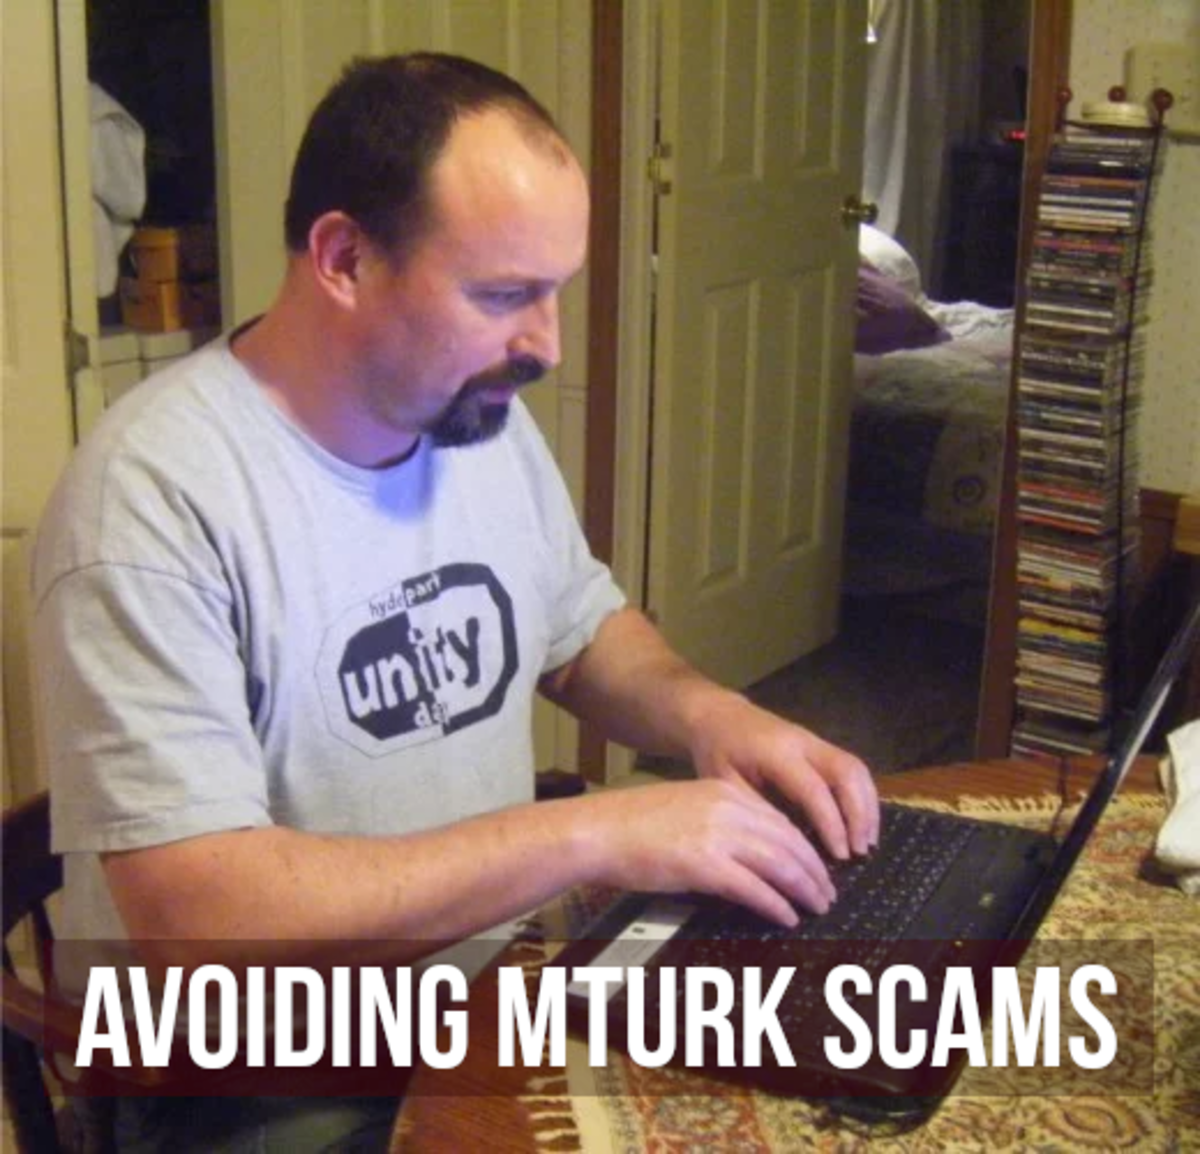 How to Avoid MTurk Scams